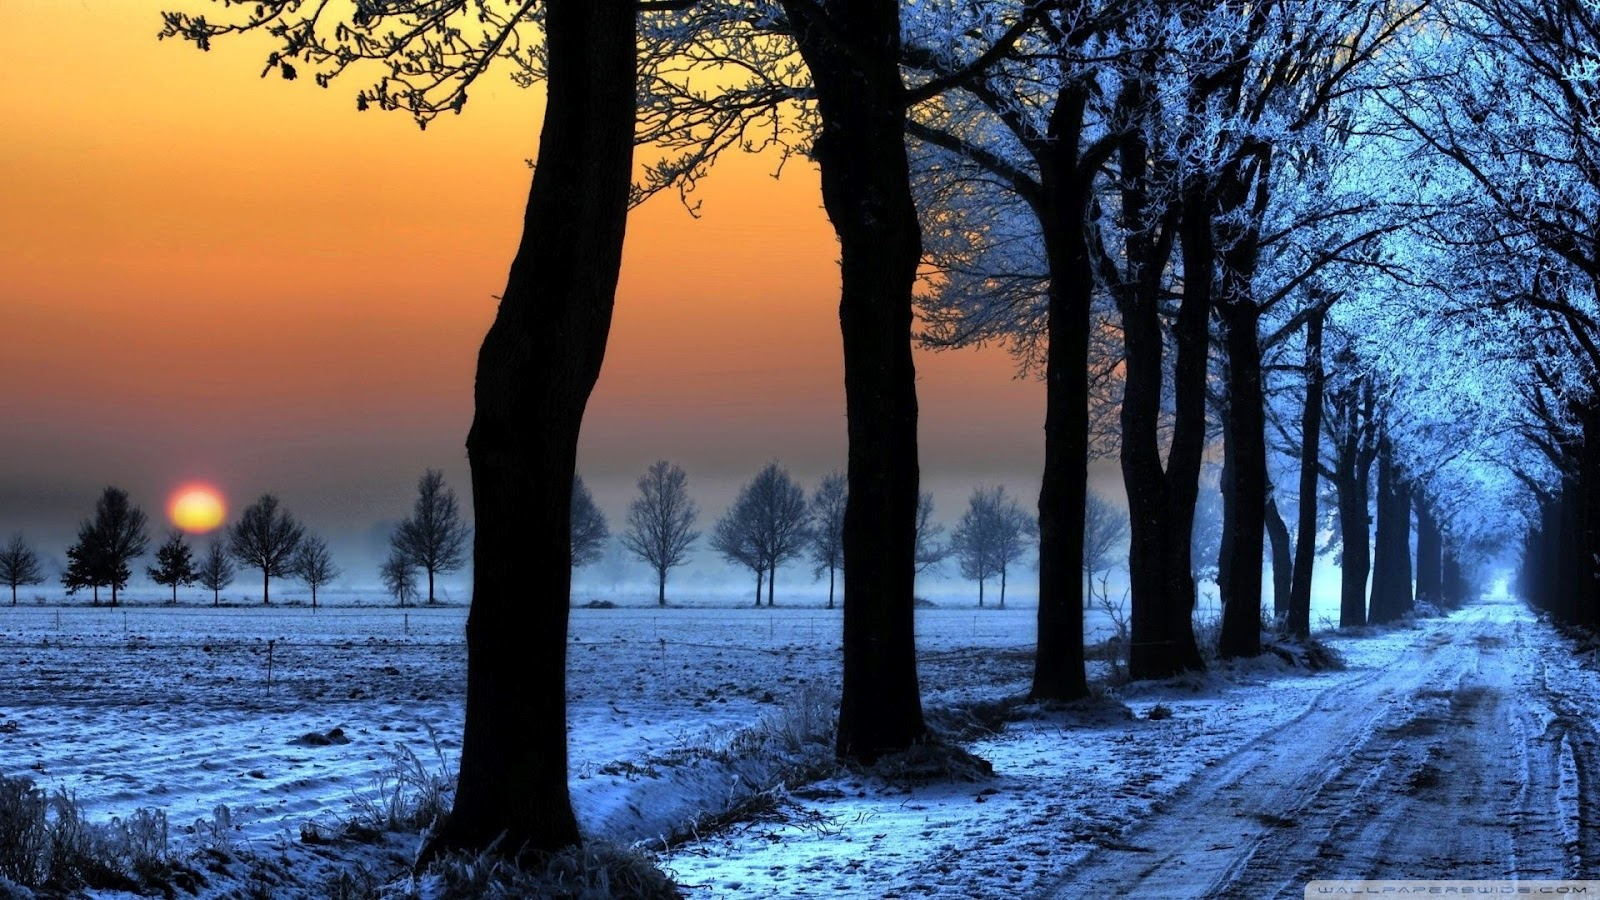 http://4.bp.blogspot.com/-ctMItMumPaY/T6QntlHDpeI/AAAAAAAAAOQ/NaQUrfiUs20/s1600/hd-nature-winter-sun-set-high-wallpapers-background.jpg